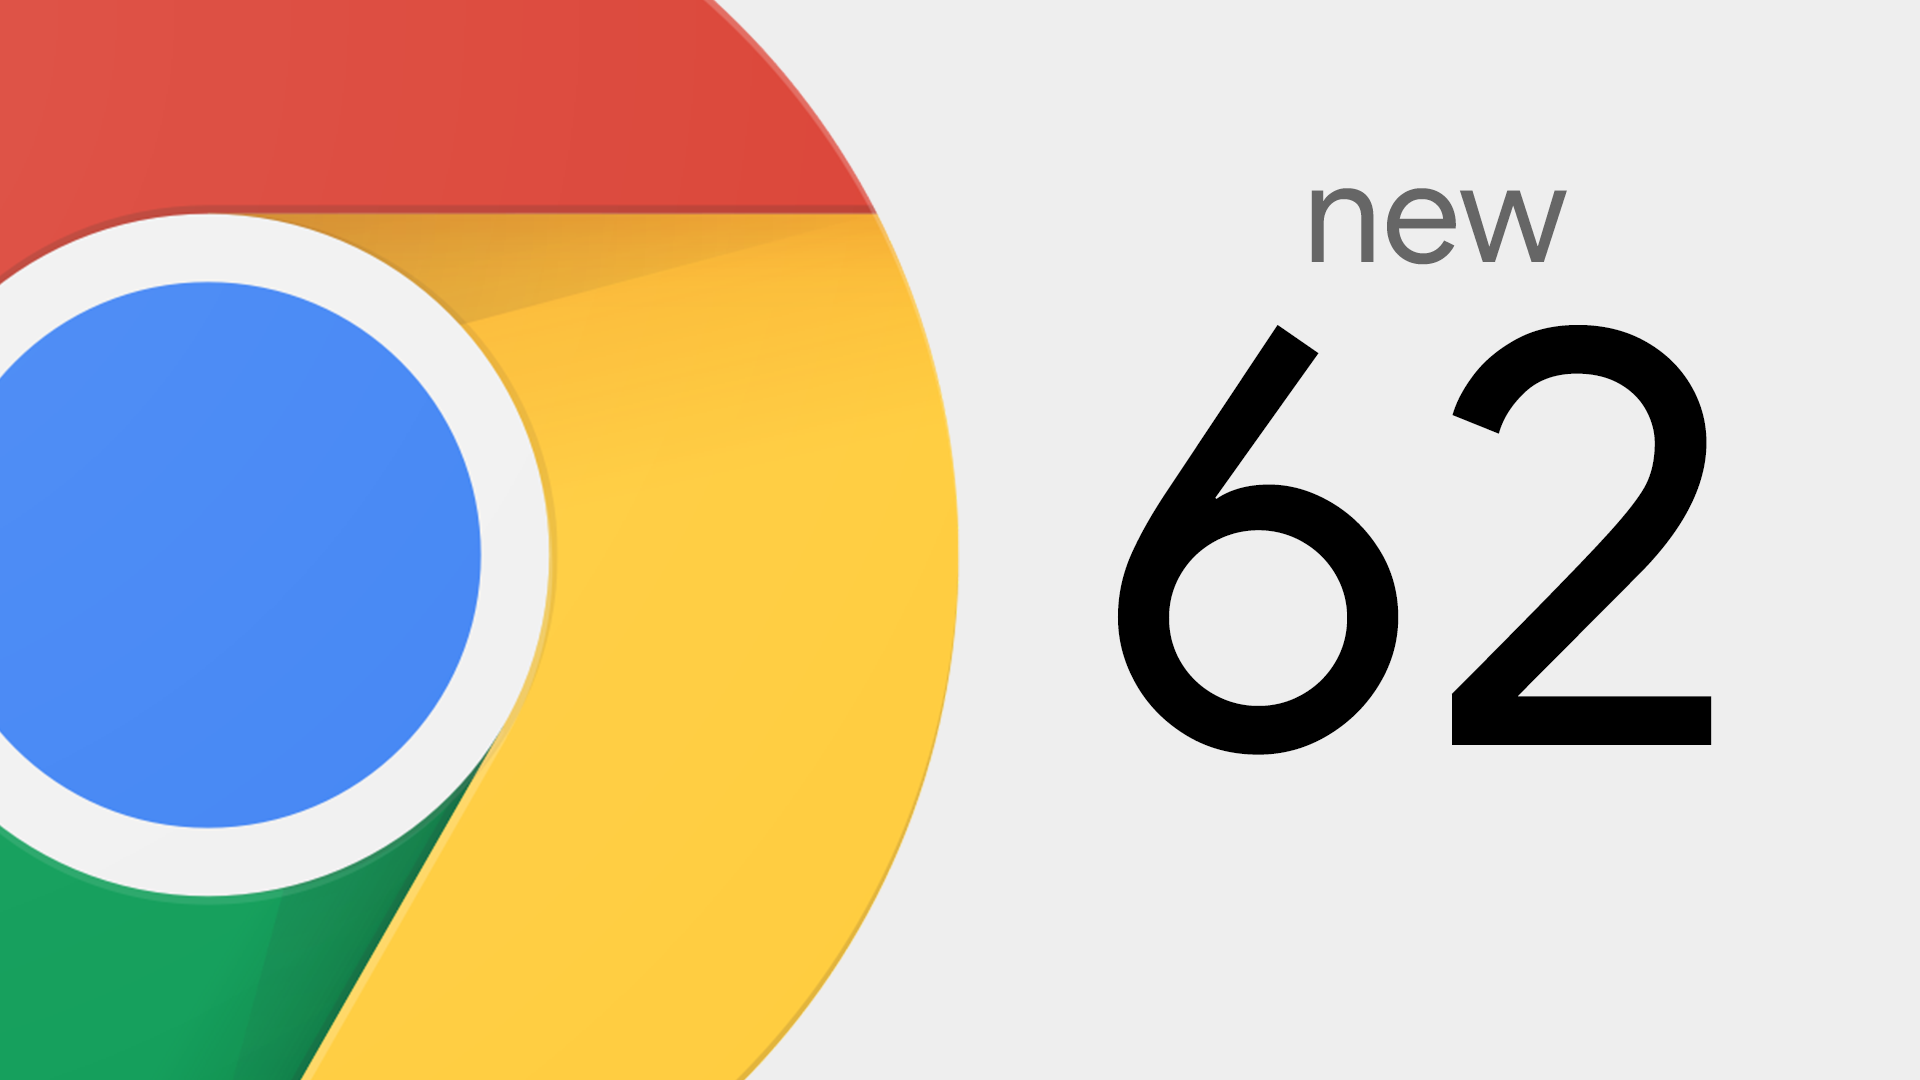 New in Chrome 62